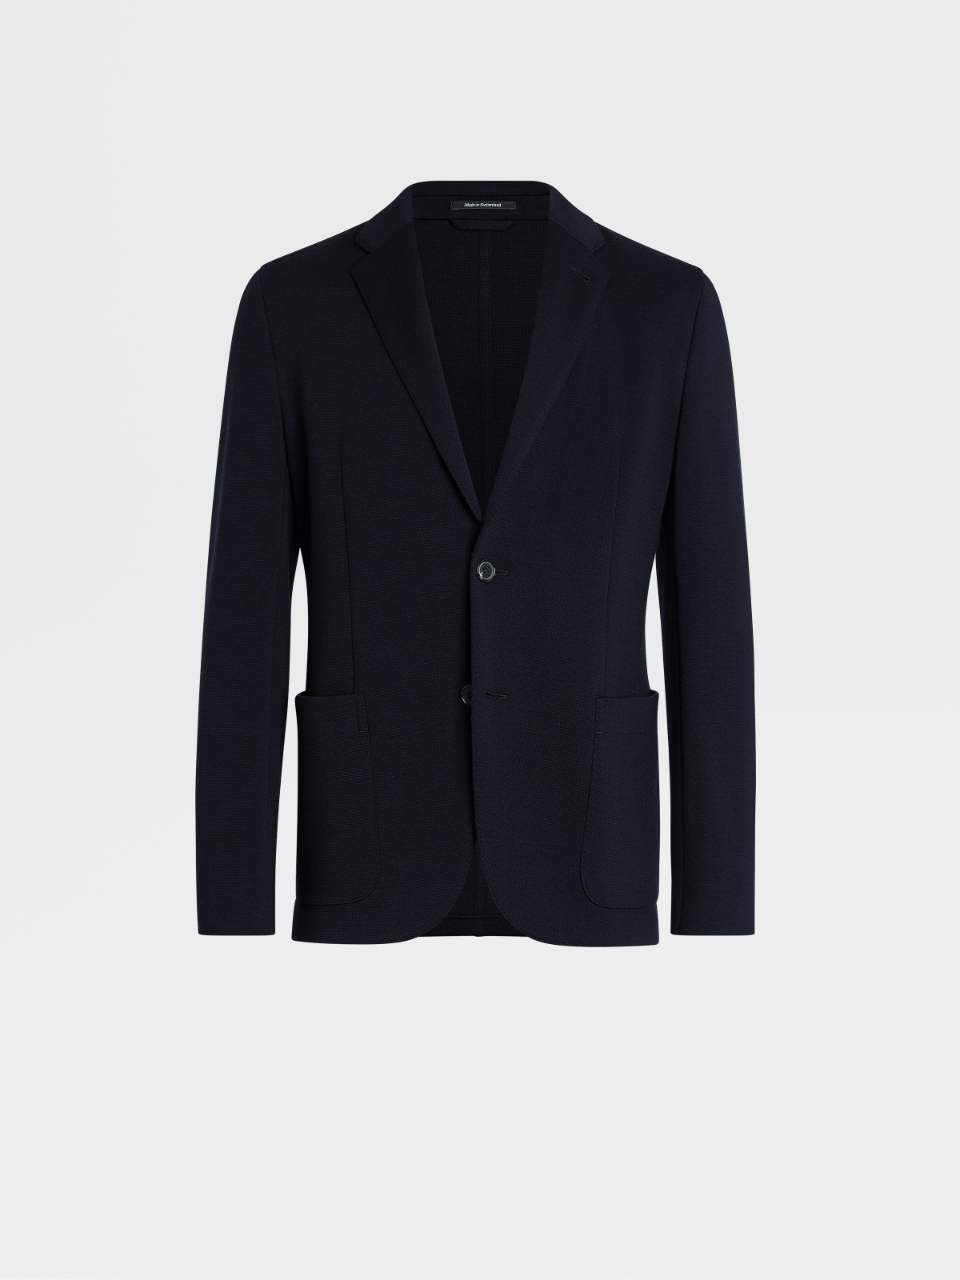 High Performance Wool Jacket